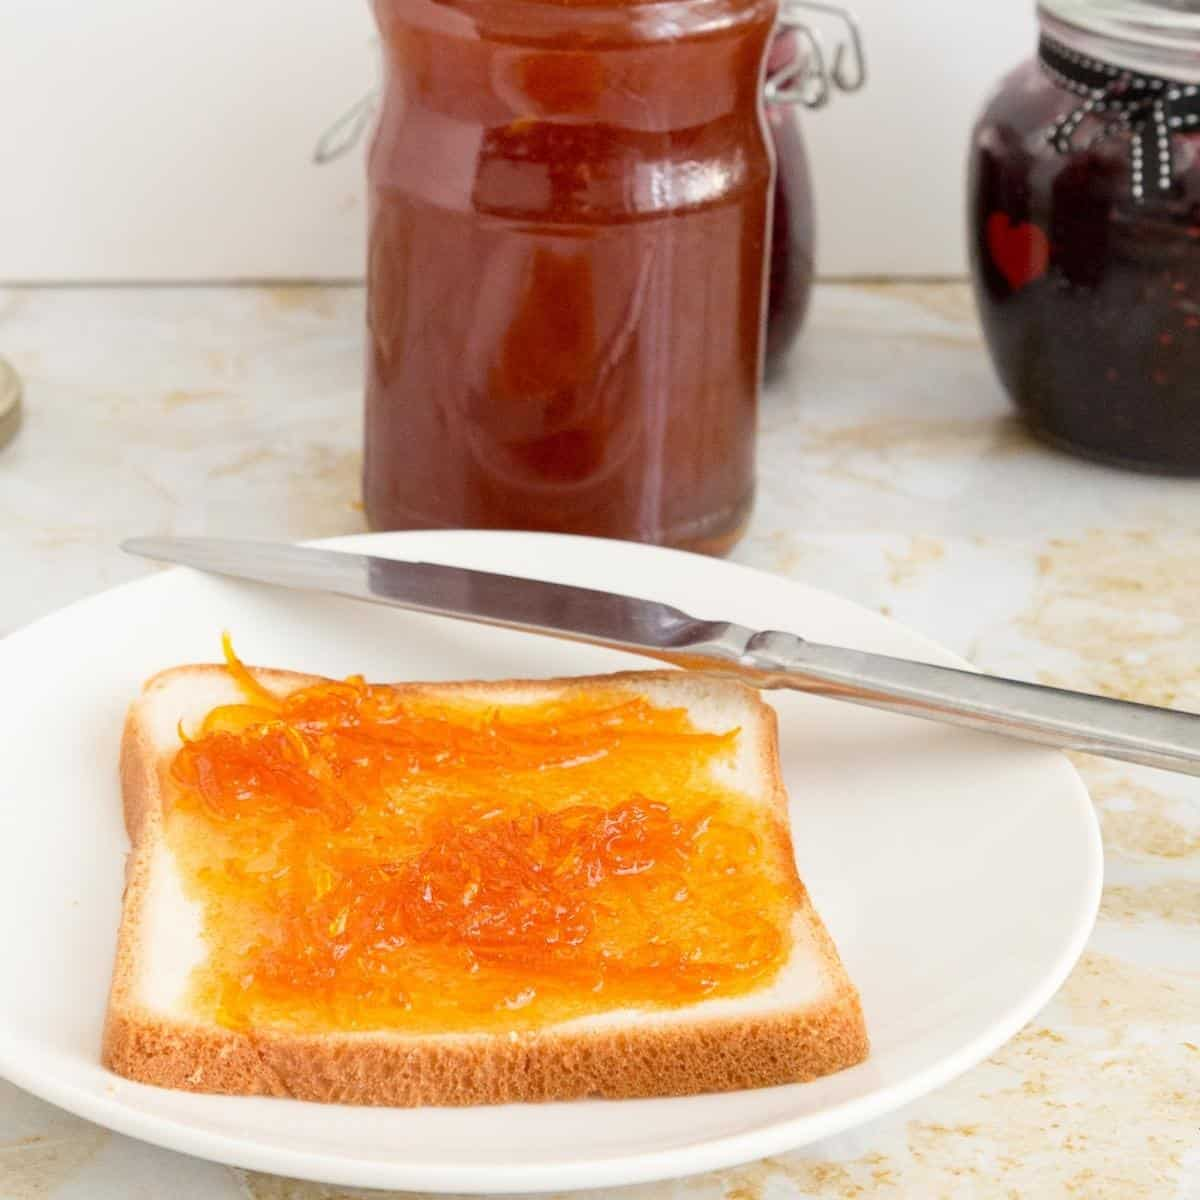 A slice of bread with confiture d'orange.